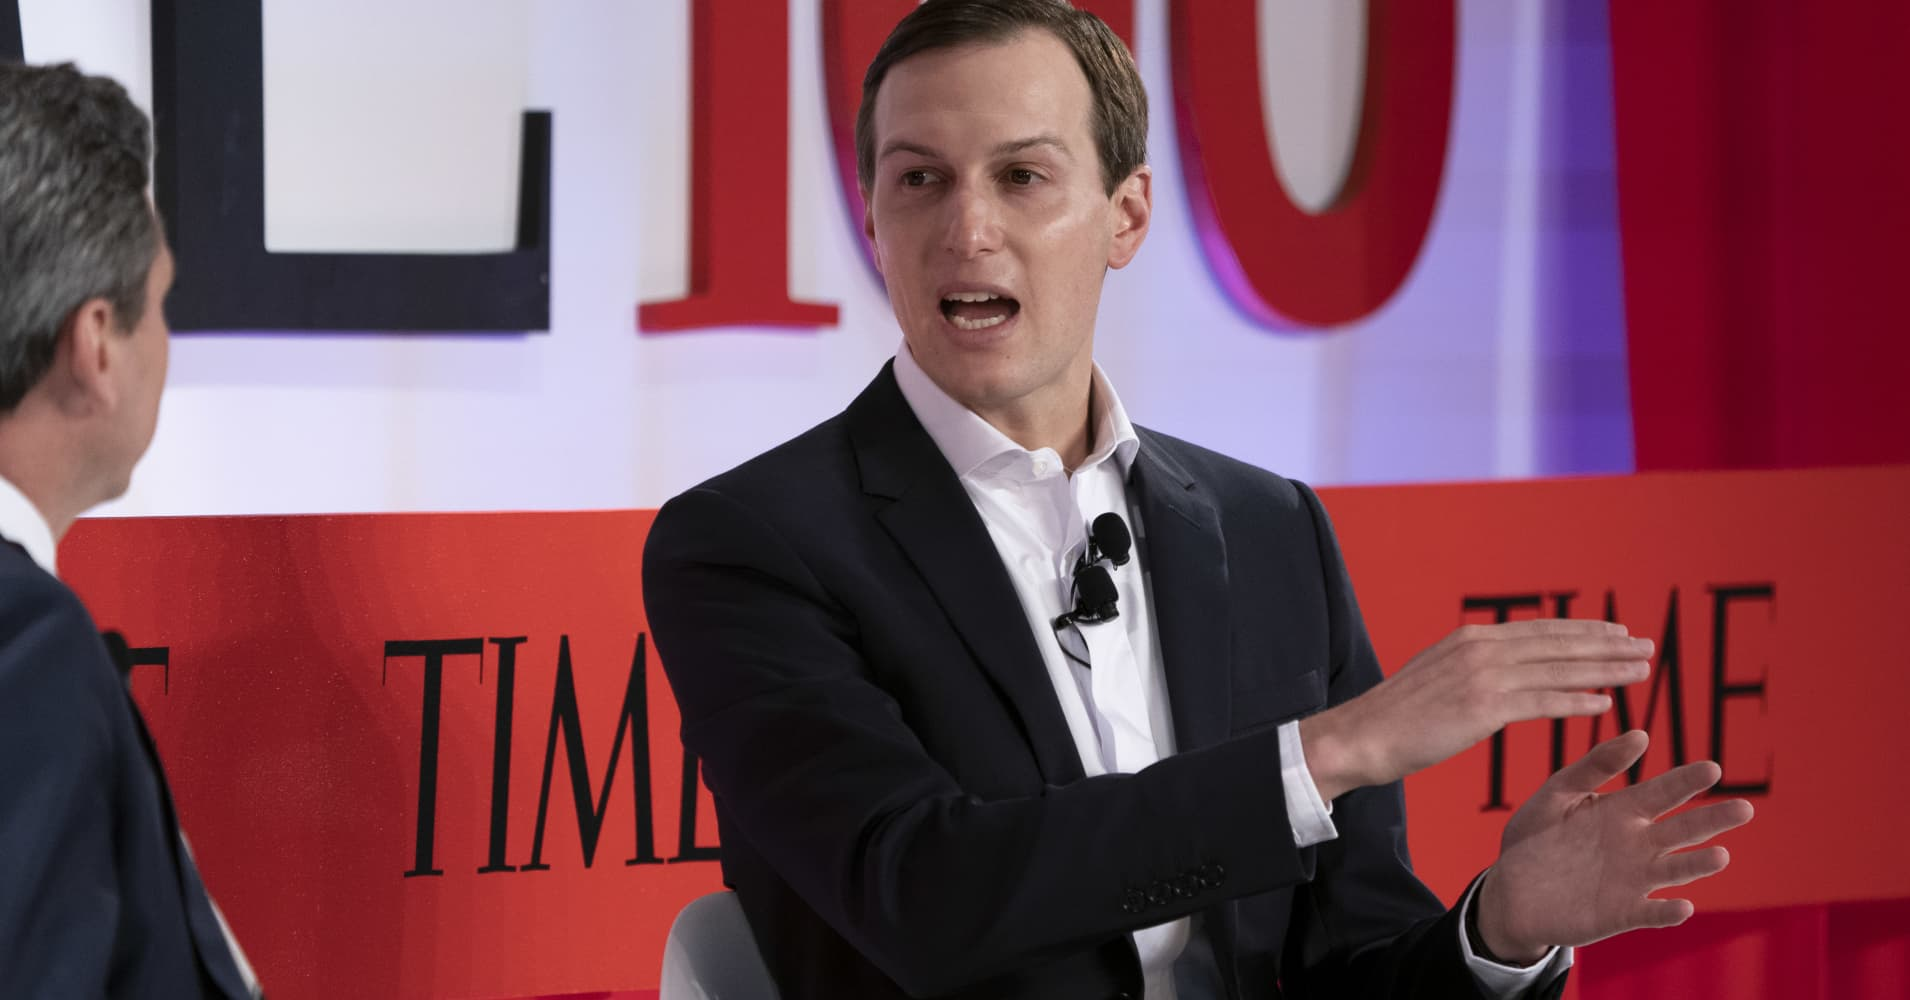 Trump Middle East peace plan is coming after Ramadan, Jared Kushner says